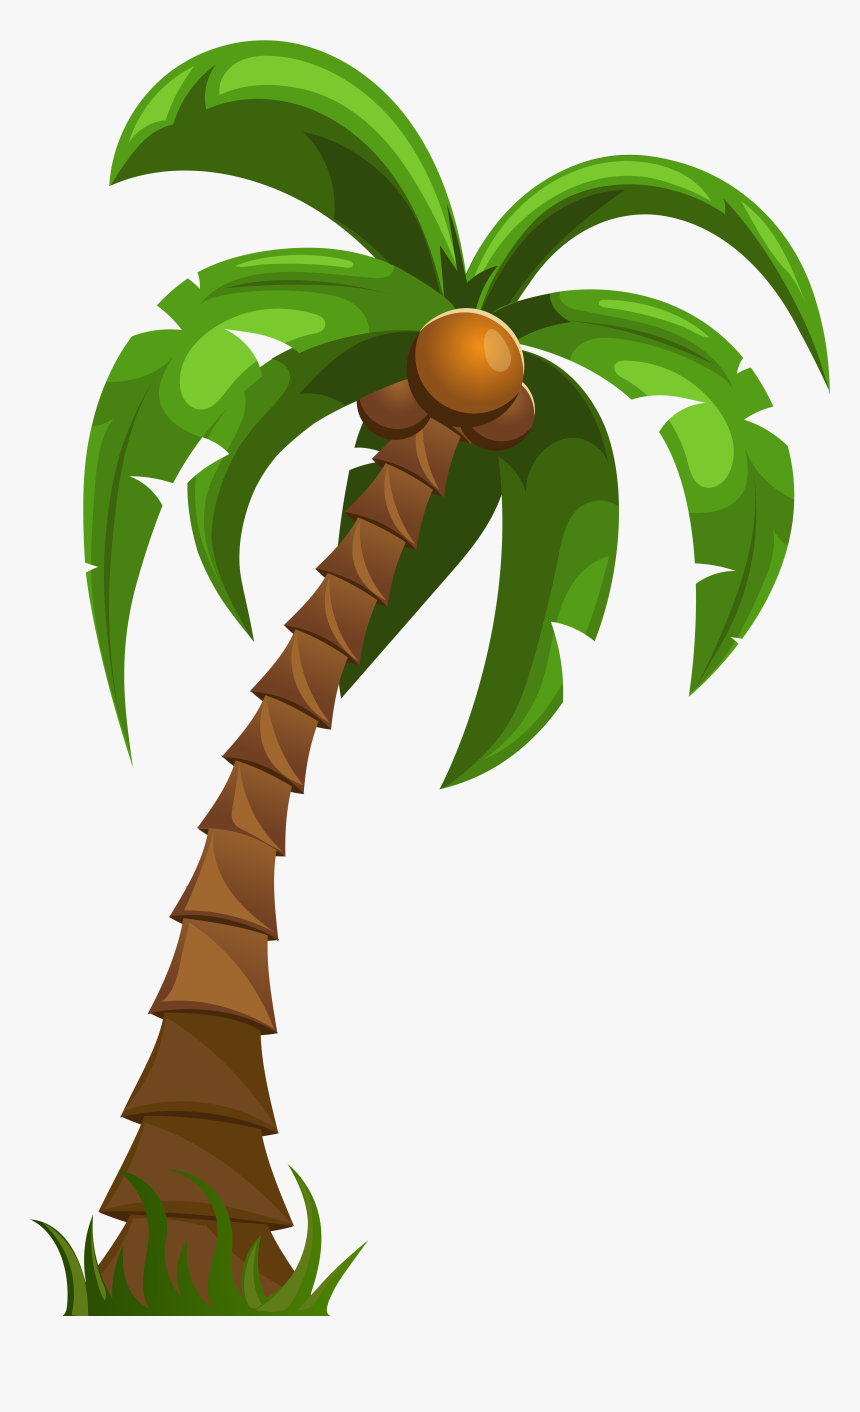 Cartoon Tree Transparent Background Transparent Background Palm Tree Png Clipart Png Download Kindpng Arecaceae tree , cartoon palm tree. transparent background palm tree png